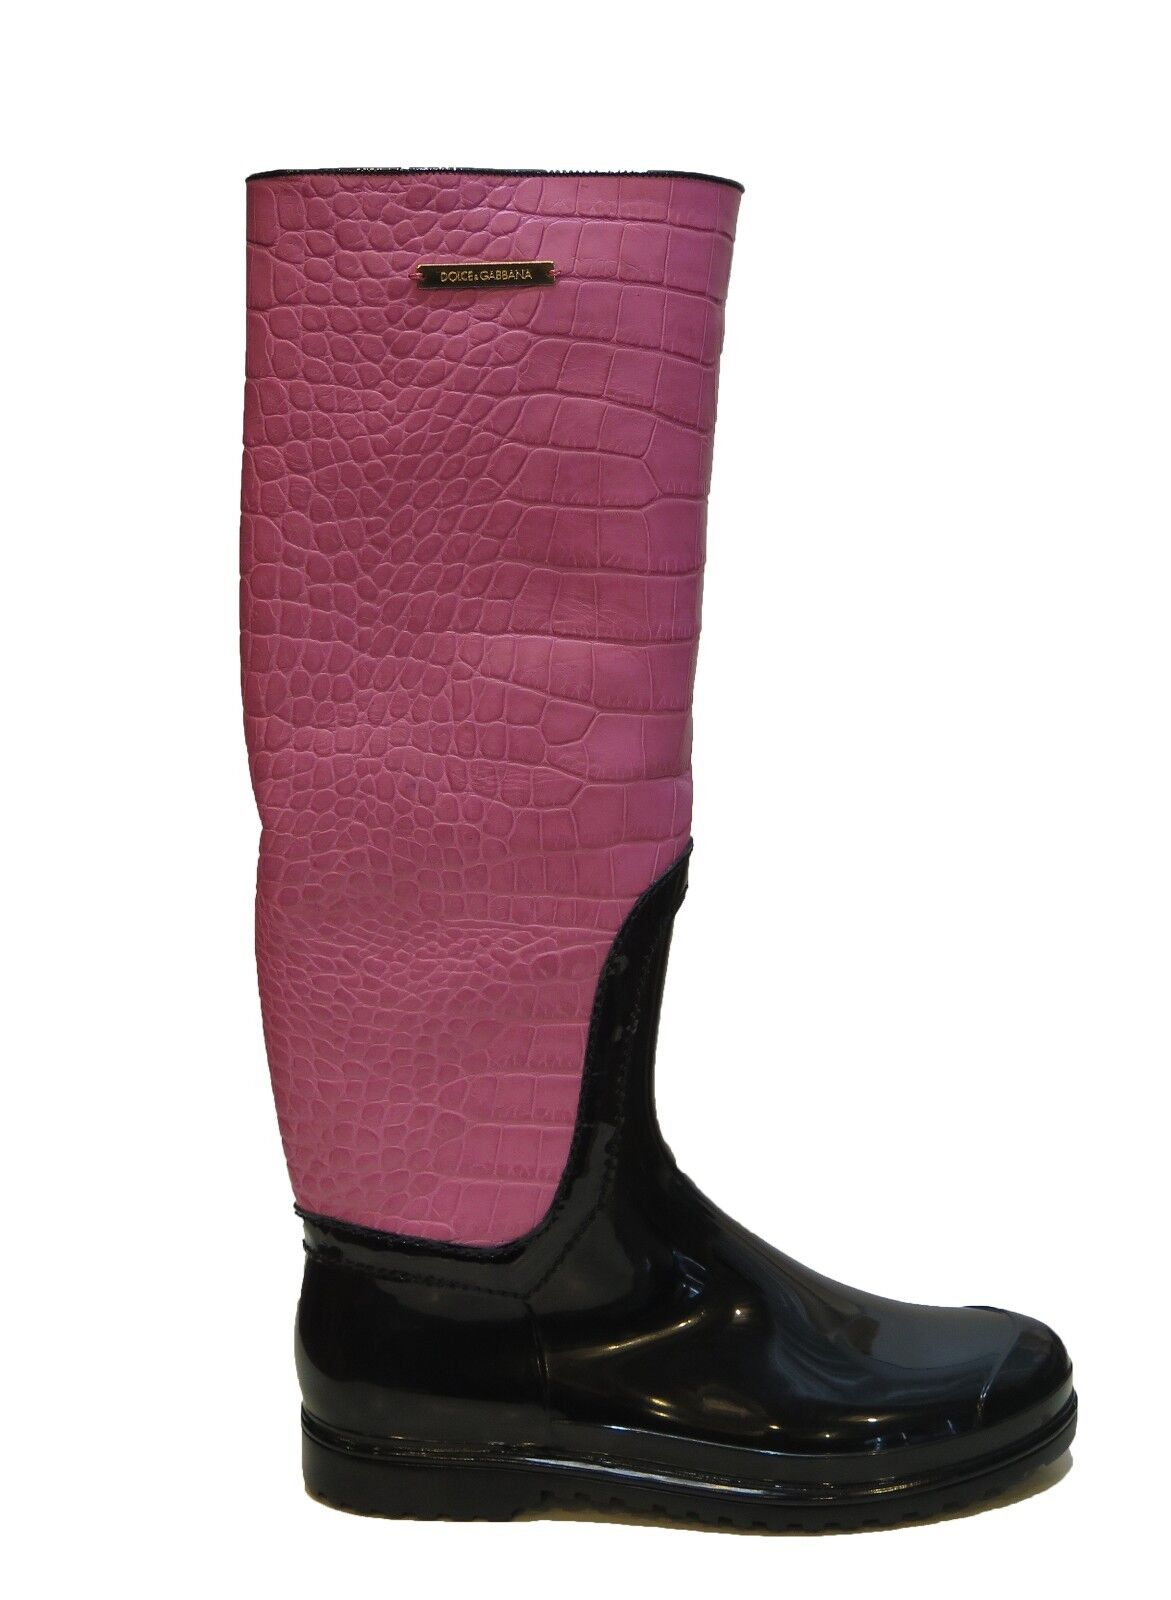 DOLCE & GABBANA Italy Woman's Pink Crocodile Leather Rubber Rainboots Boots 8 7